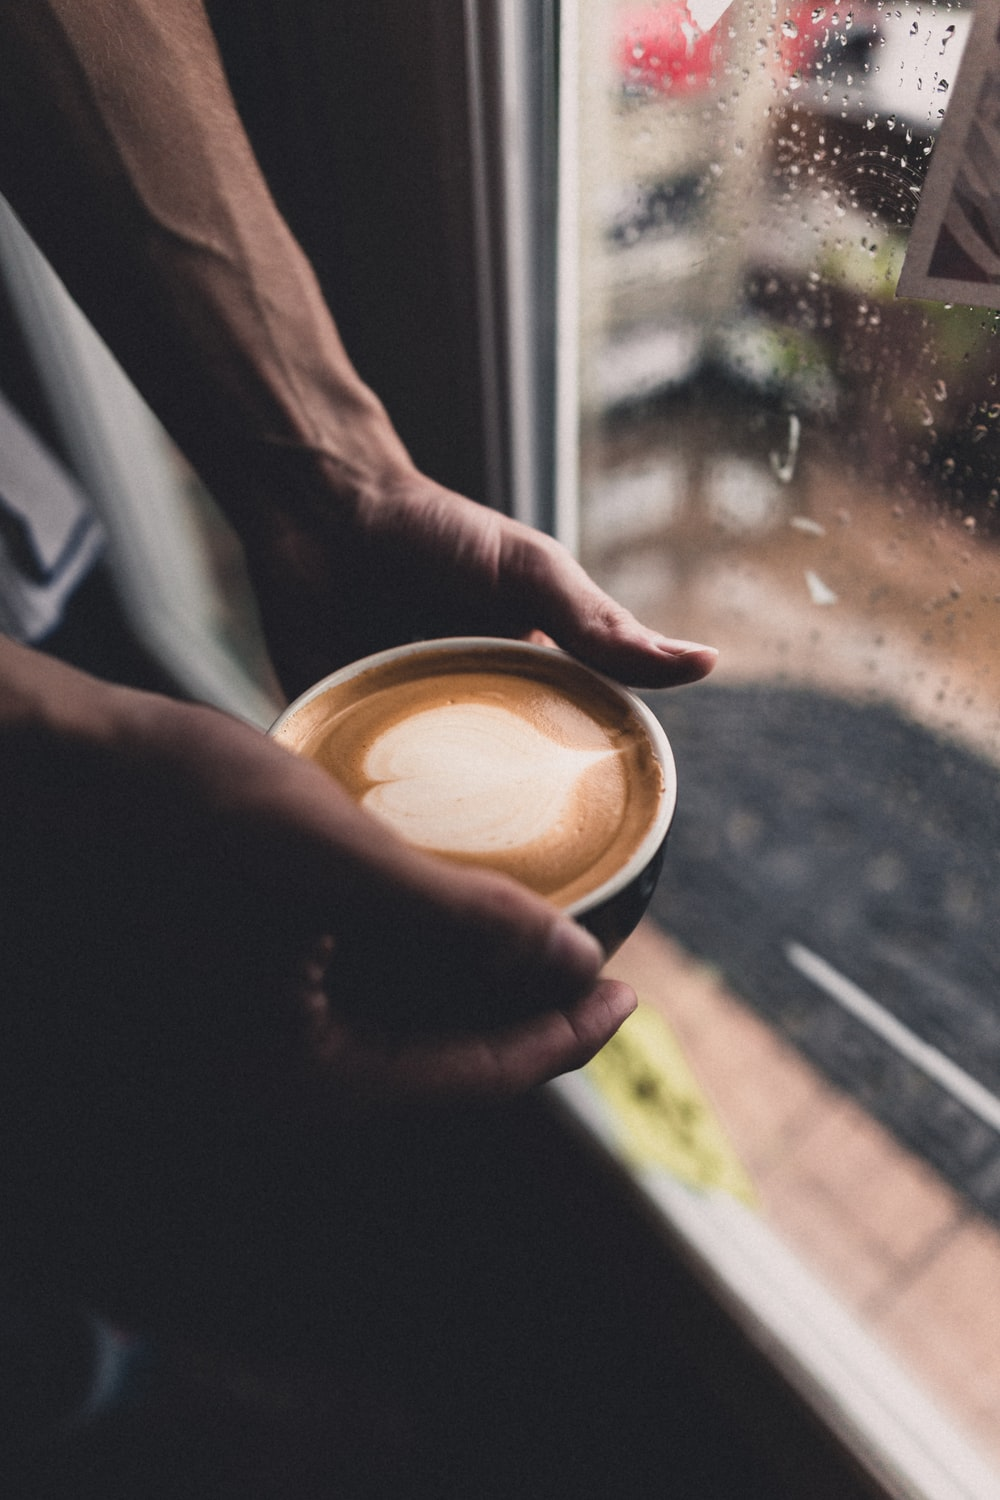 person holding cup with coffee beside glass window